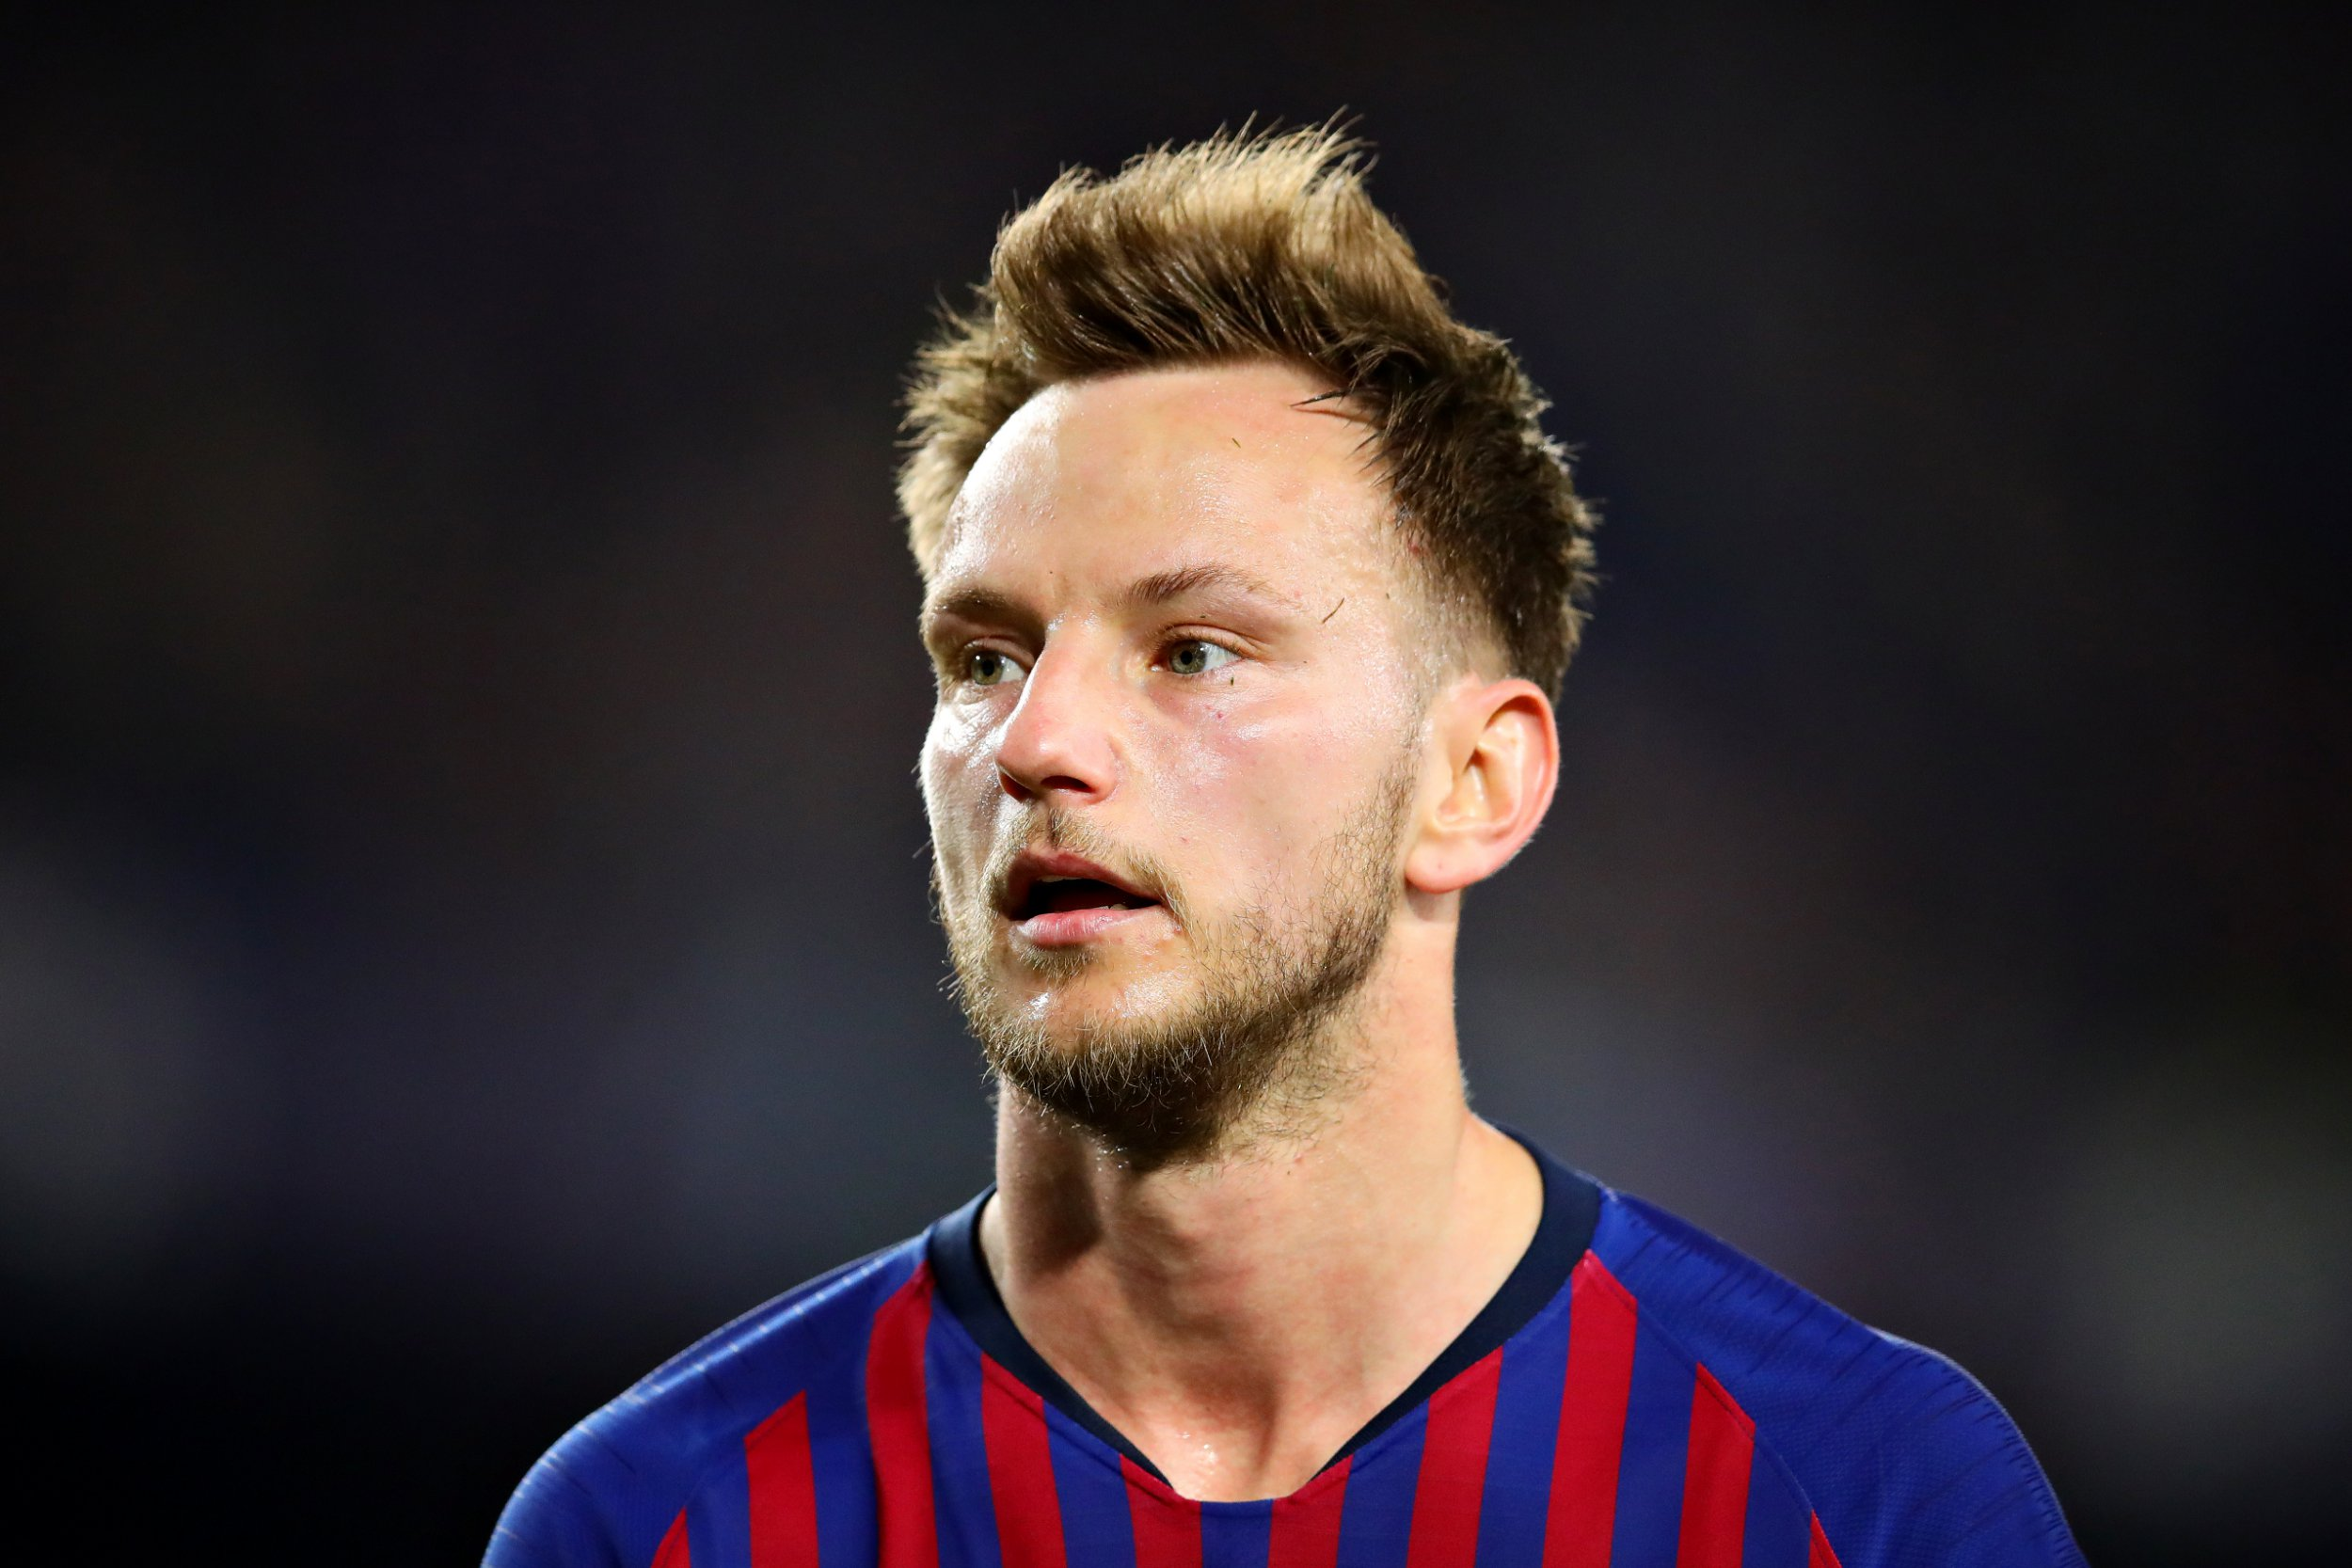 Inter are reportedly set to sign Ivan Rakitic from Barcelona